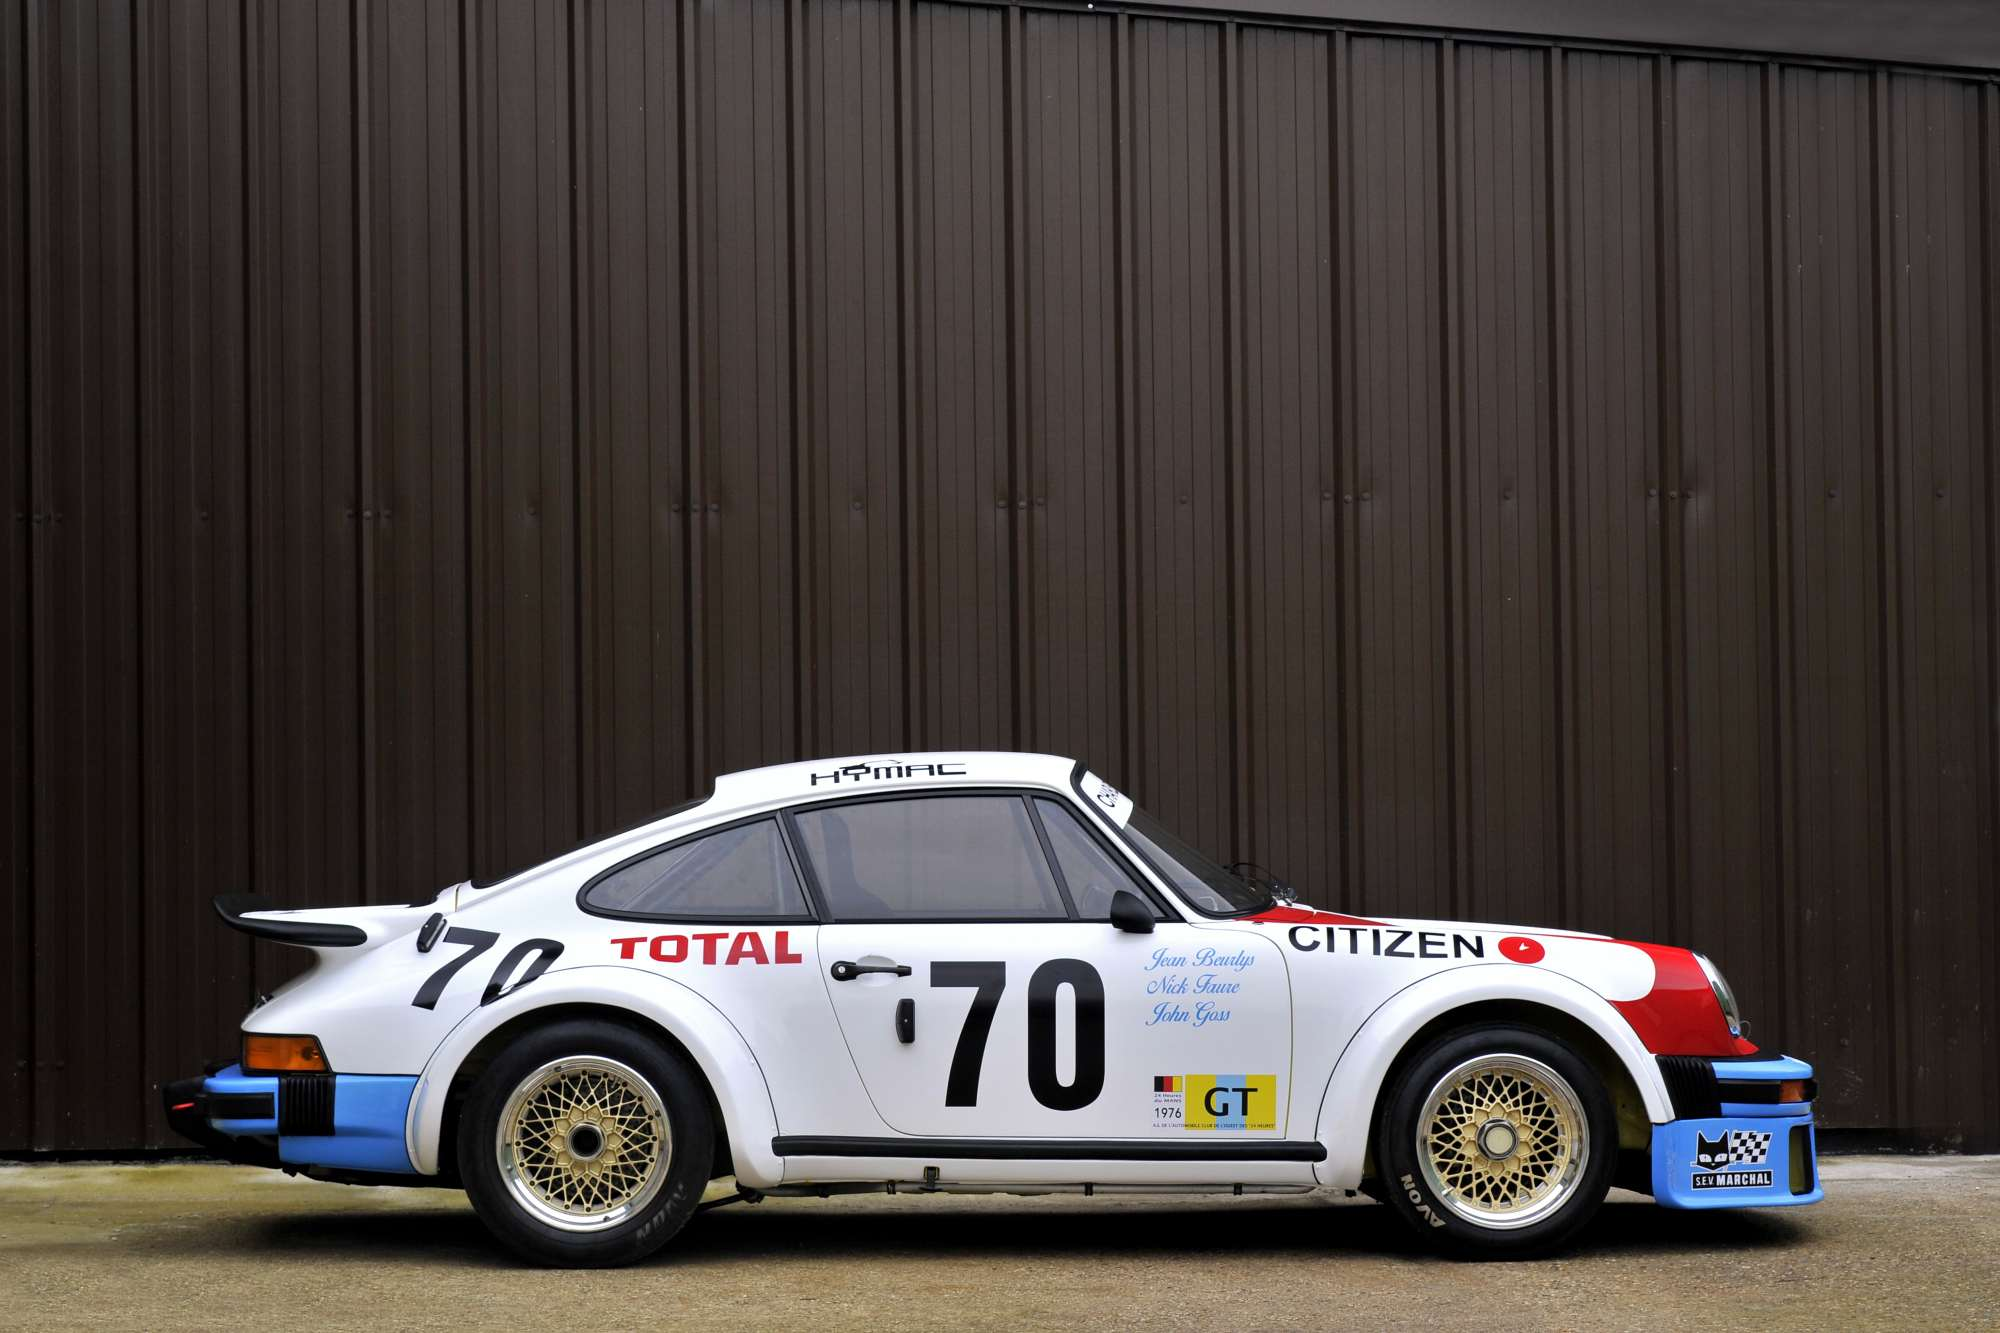 1976 Porsche 934 RSR Turbo | Previously Sold | FISKENS